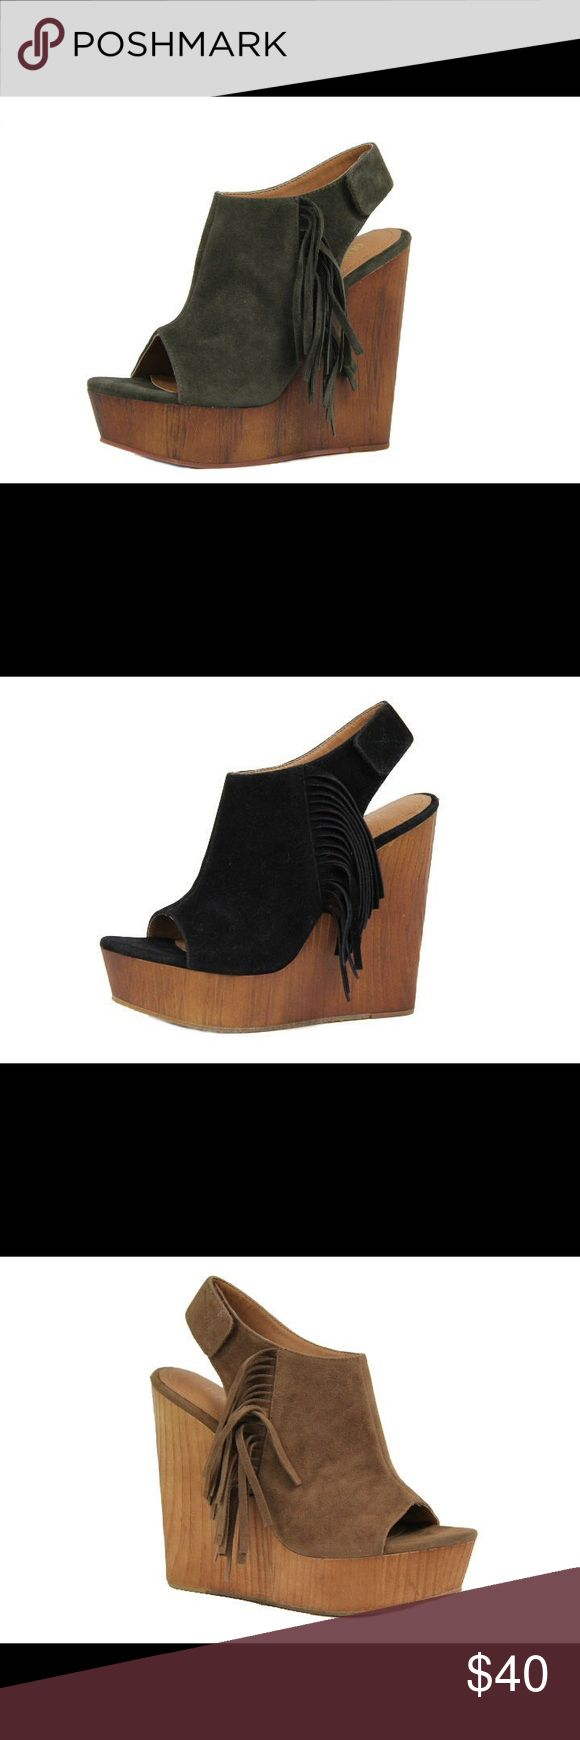 Ladies wedge sandal with side fringe. Olive. NIB Very stylish and comfy ladies wedge sandal with side fringe. Around 5 inches heels. Brand new in box, olive  and available also in camel and black colors and listed in my closet. Man made suede. NO TRADES shoeroom21 boutique Shoes Wedges